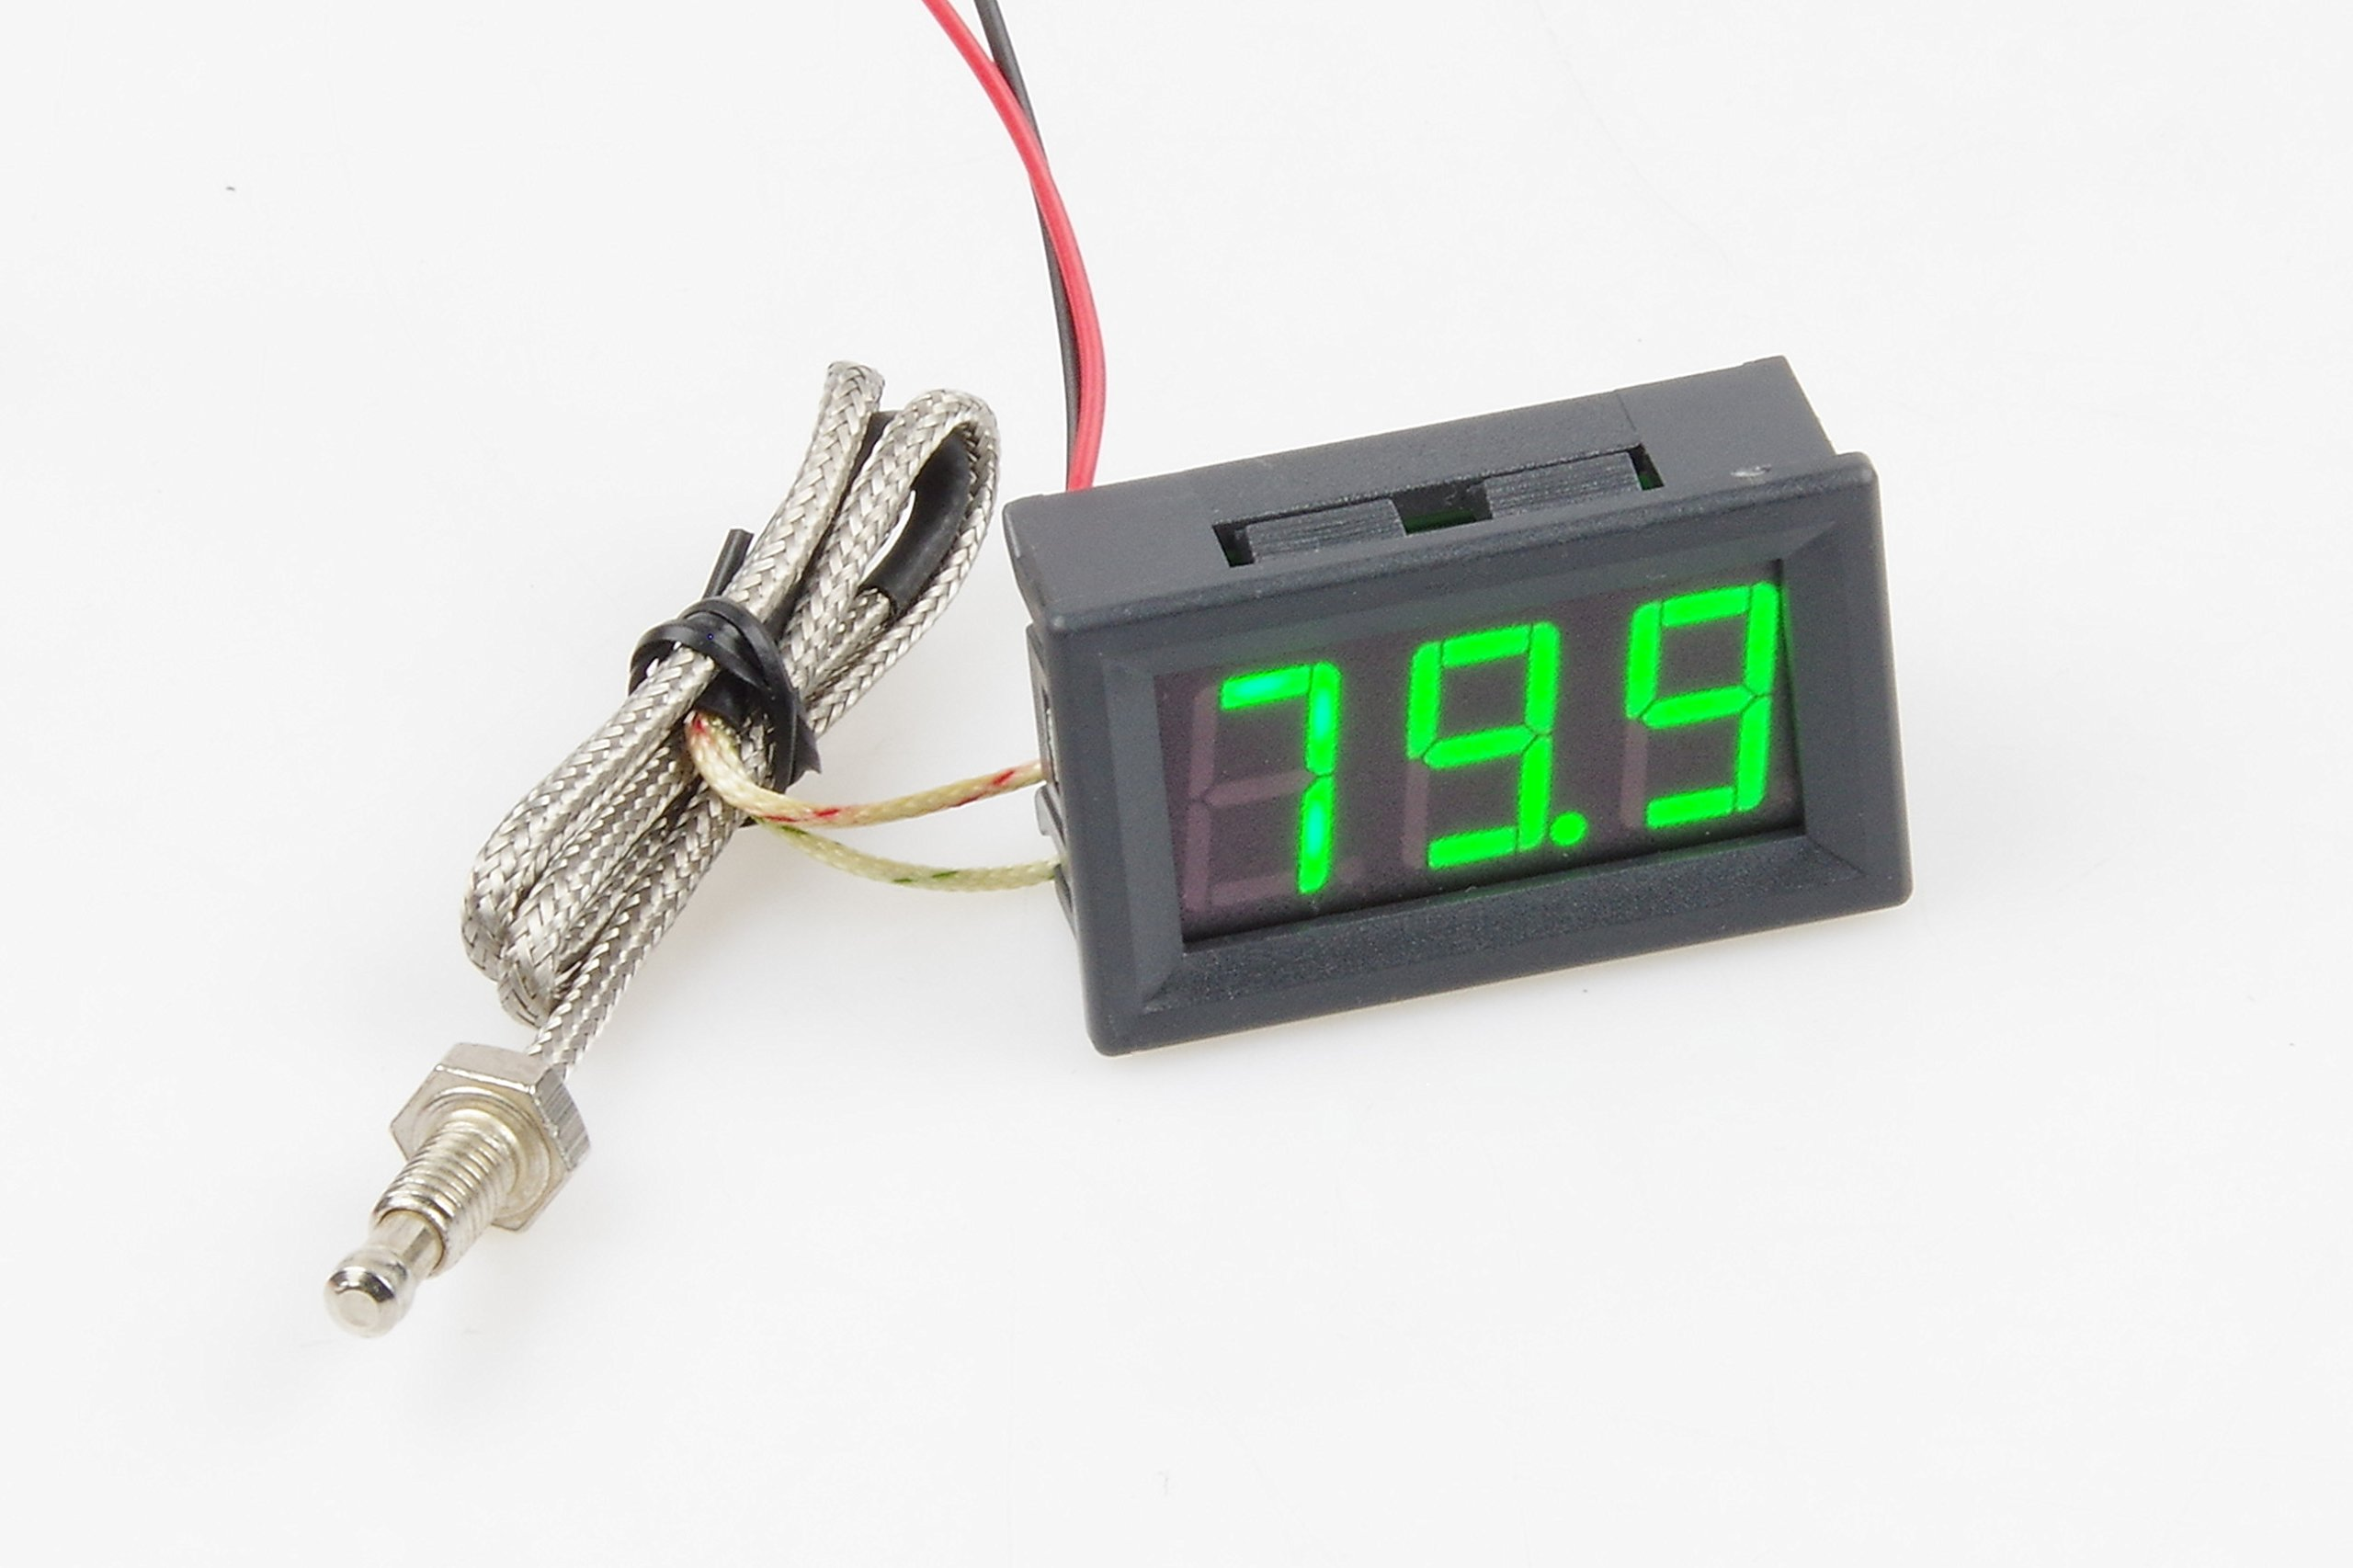 KNACRO -76-999℉ Green LED Digital high temperature precision thermometer industrial thermometer K type thermocouple M6 probe DC 12V 24V CAR (Green)